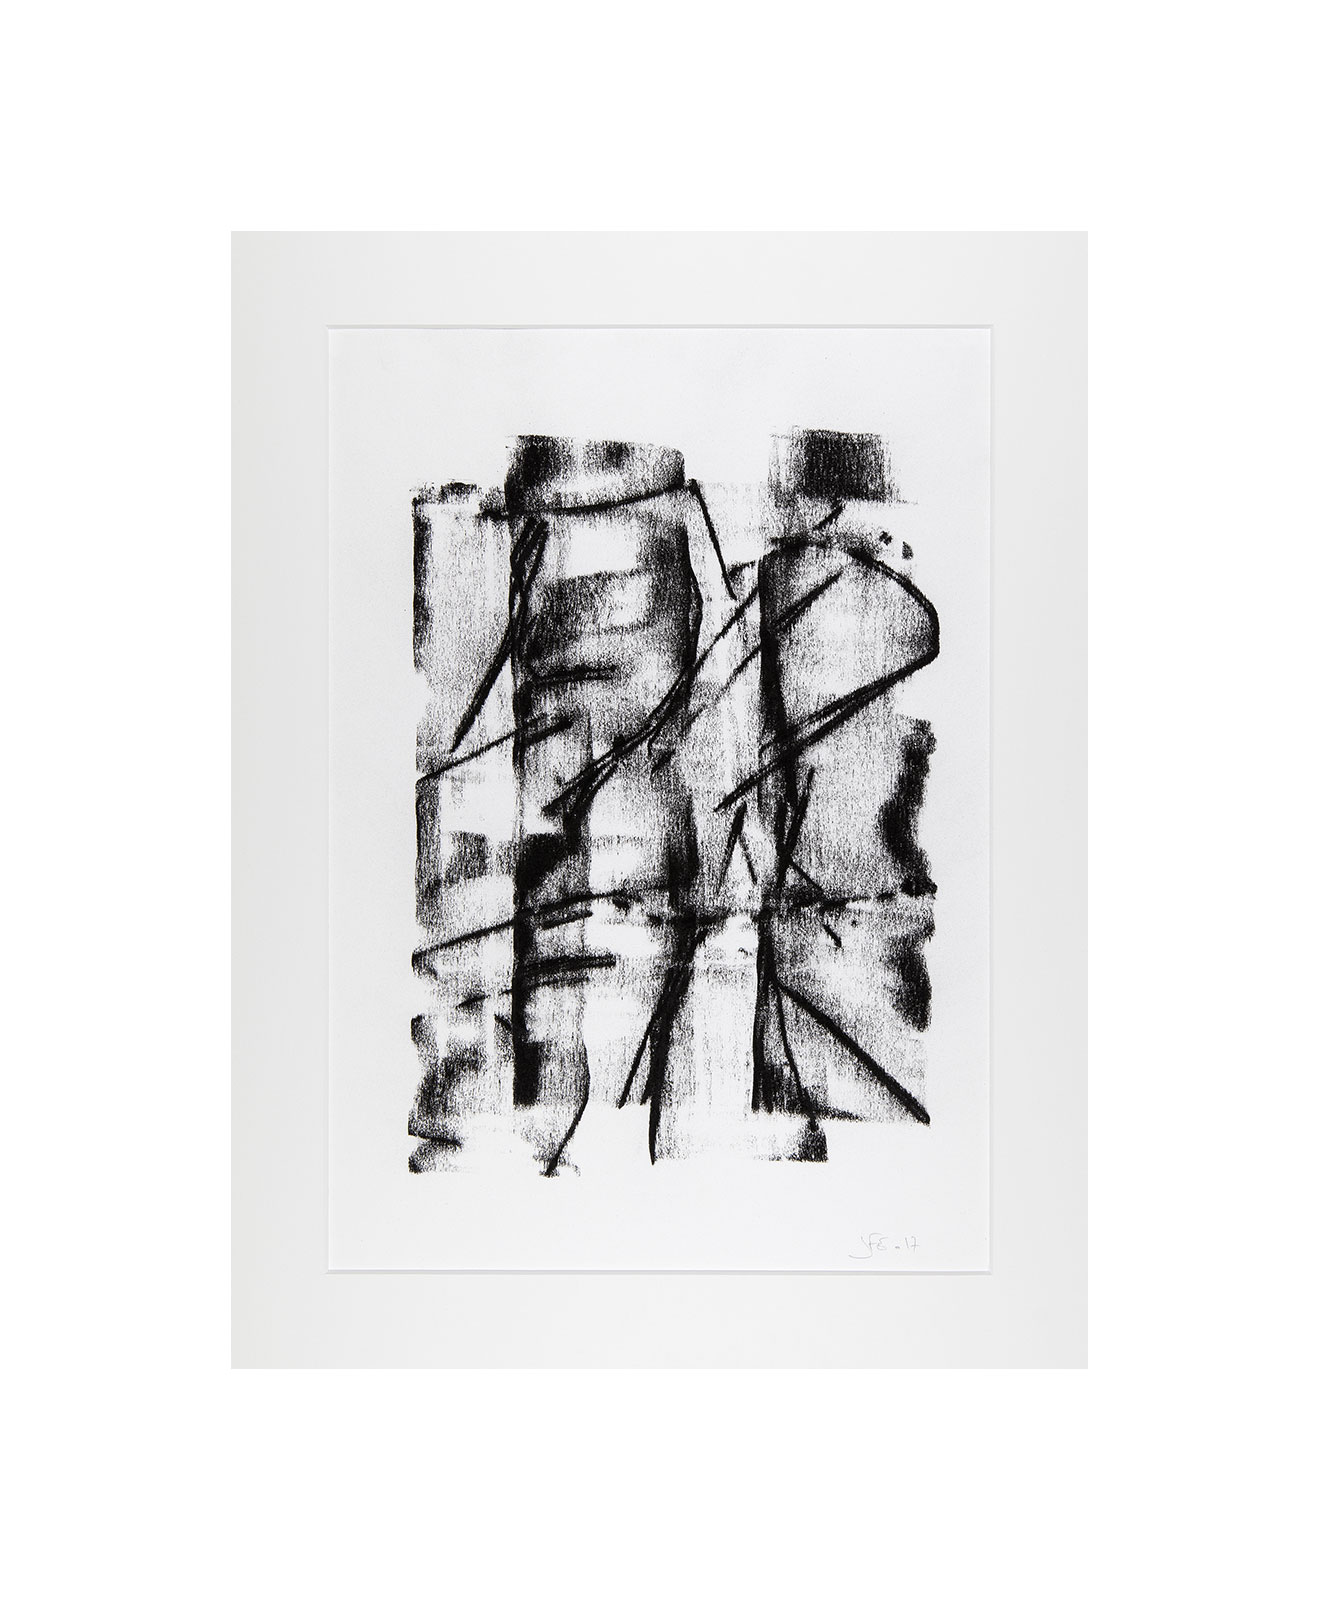 Cha 1.2, Charcoal on paper, black and white artwork, drawing, jf escande, contemporary art